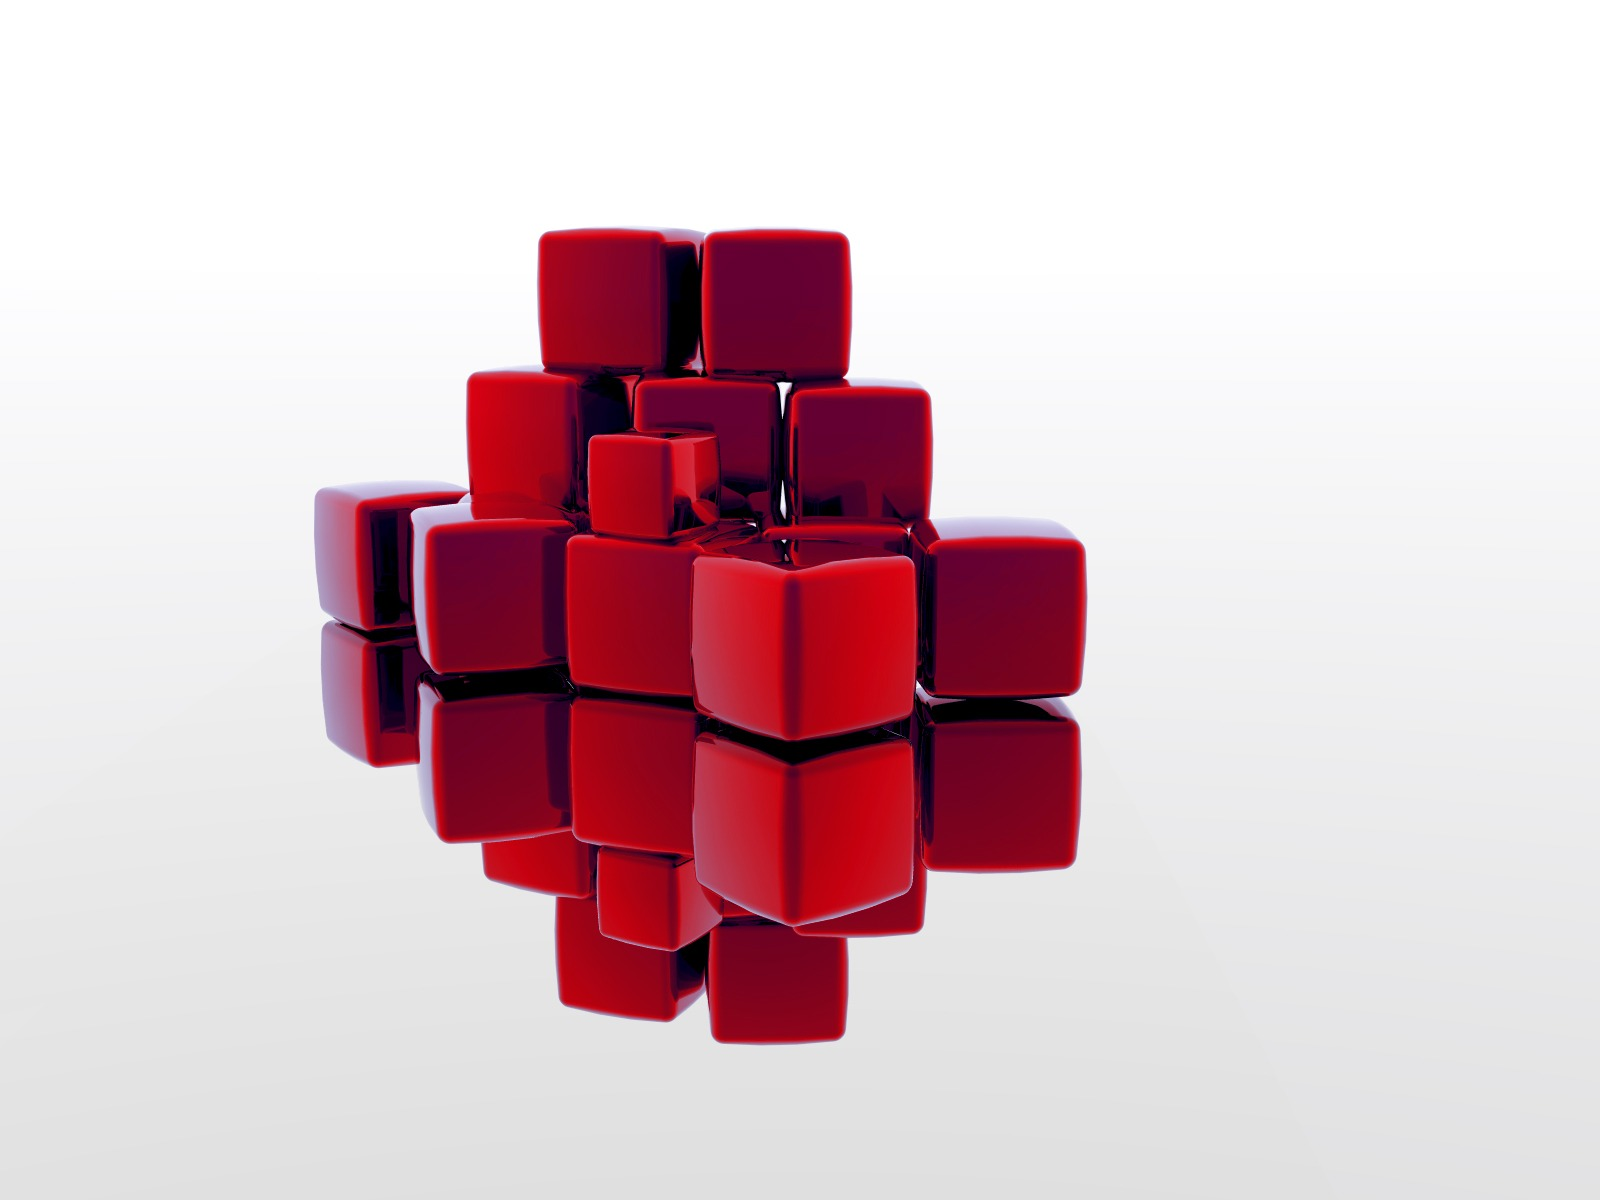 Cube d wallpaper abstract d wallpapers for free download about